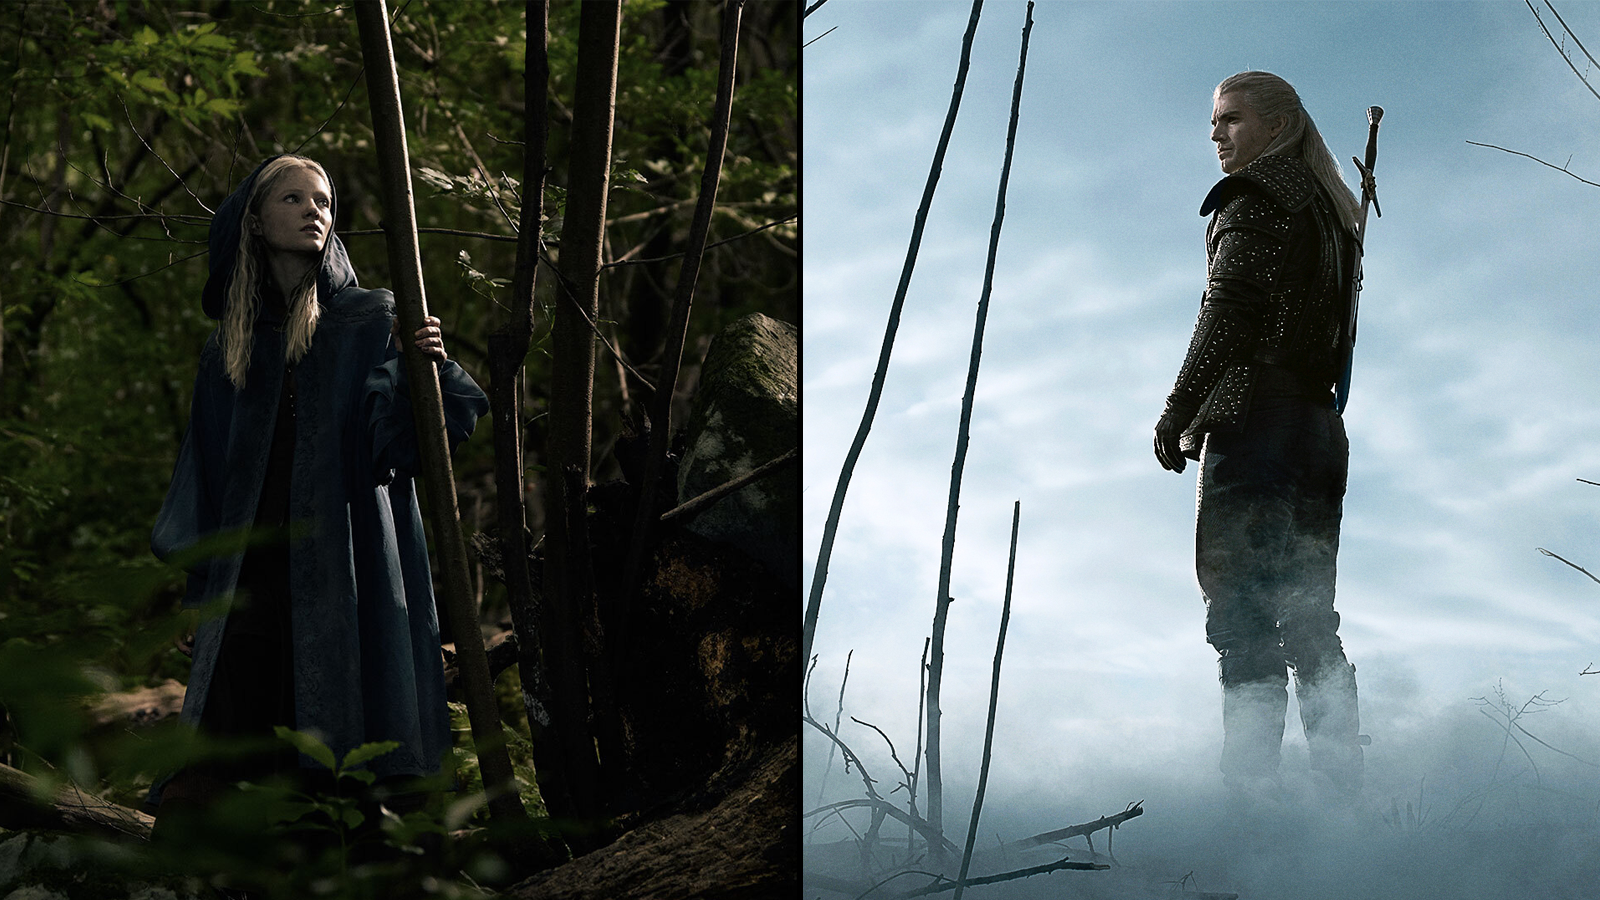 Two characters from the show in separate stills from it; one in a forest, the other in a misty area